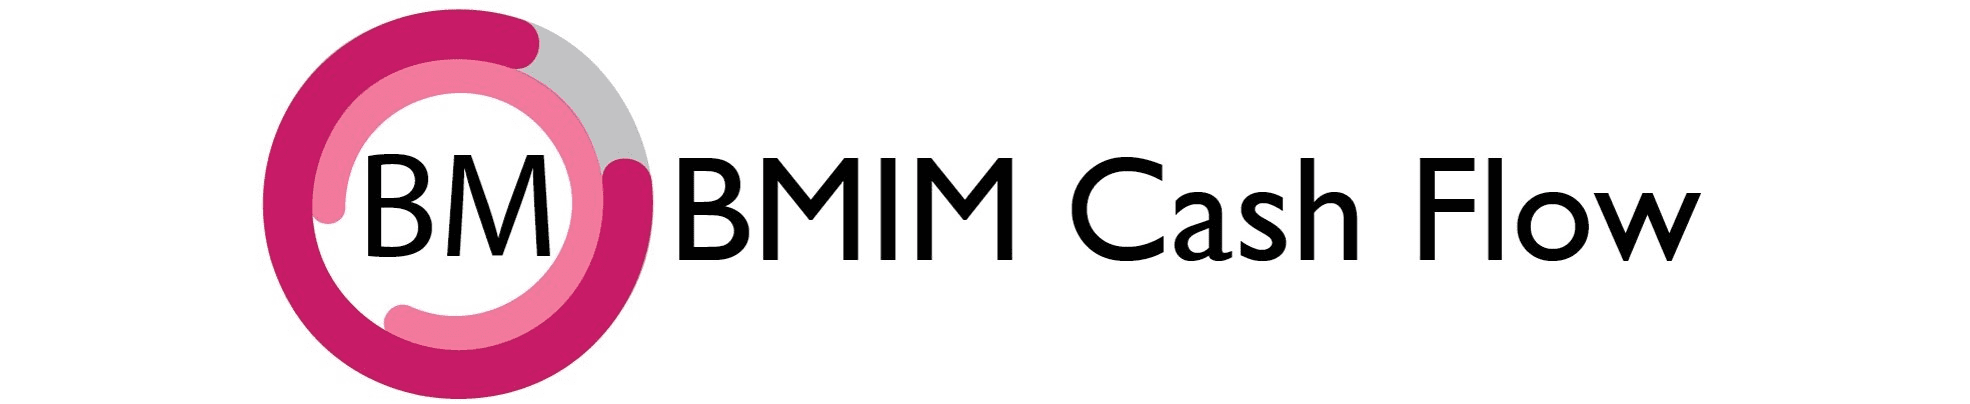 HSBC & BMIM Cash Flow: Cash Flow and Cakes